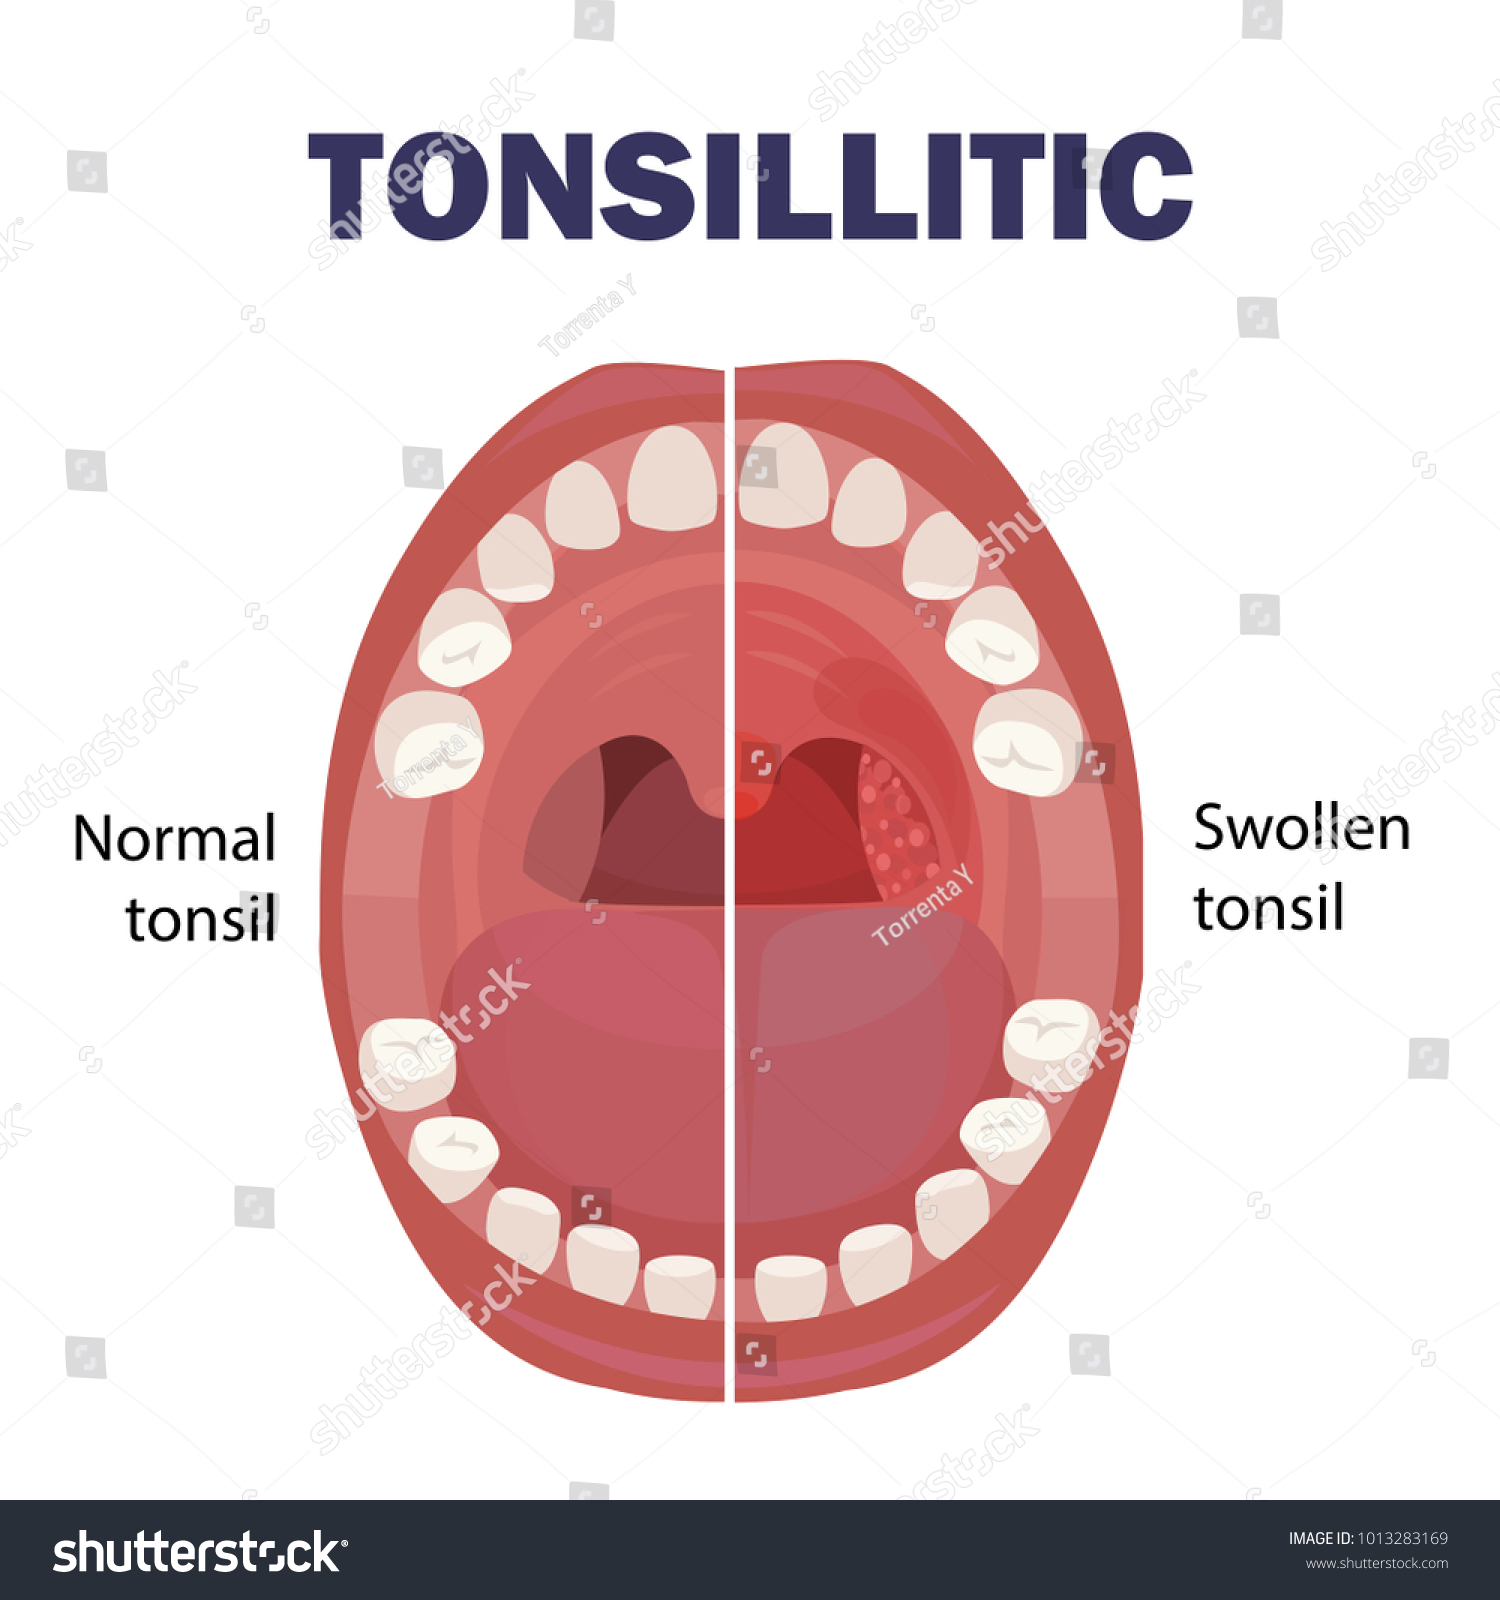 Anatomy Human Mouth Tonsil Stone Mouth Stock Photo (Photo, Vector ...